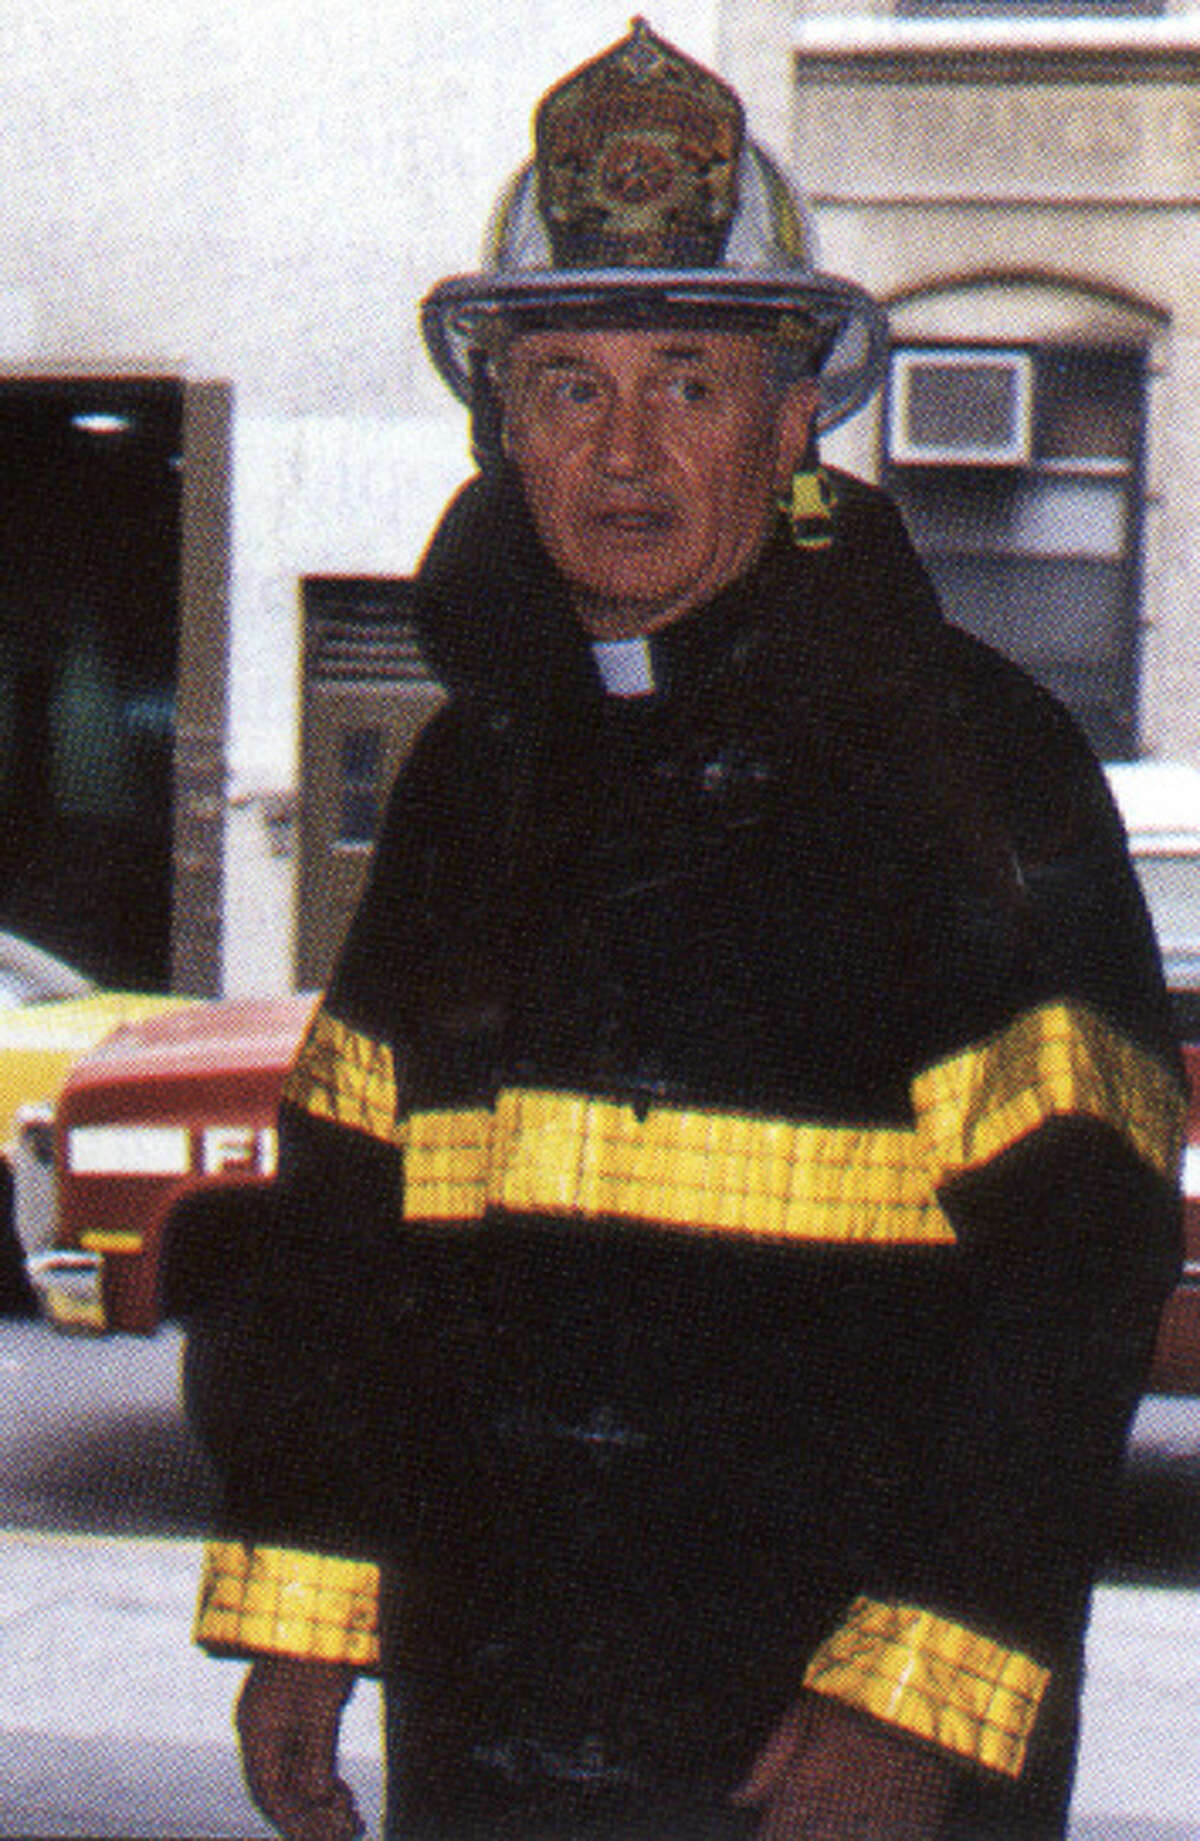 The Rev. Mychal Judge, a chaplain with the New York City Fire Department, died in the Sept. 11, 2001 collapse of the World Trade Center in New York City. (Photo courtesy of The Anthonian)